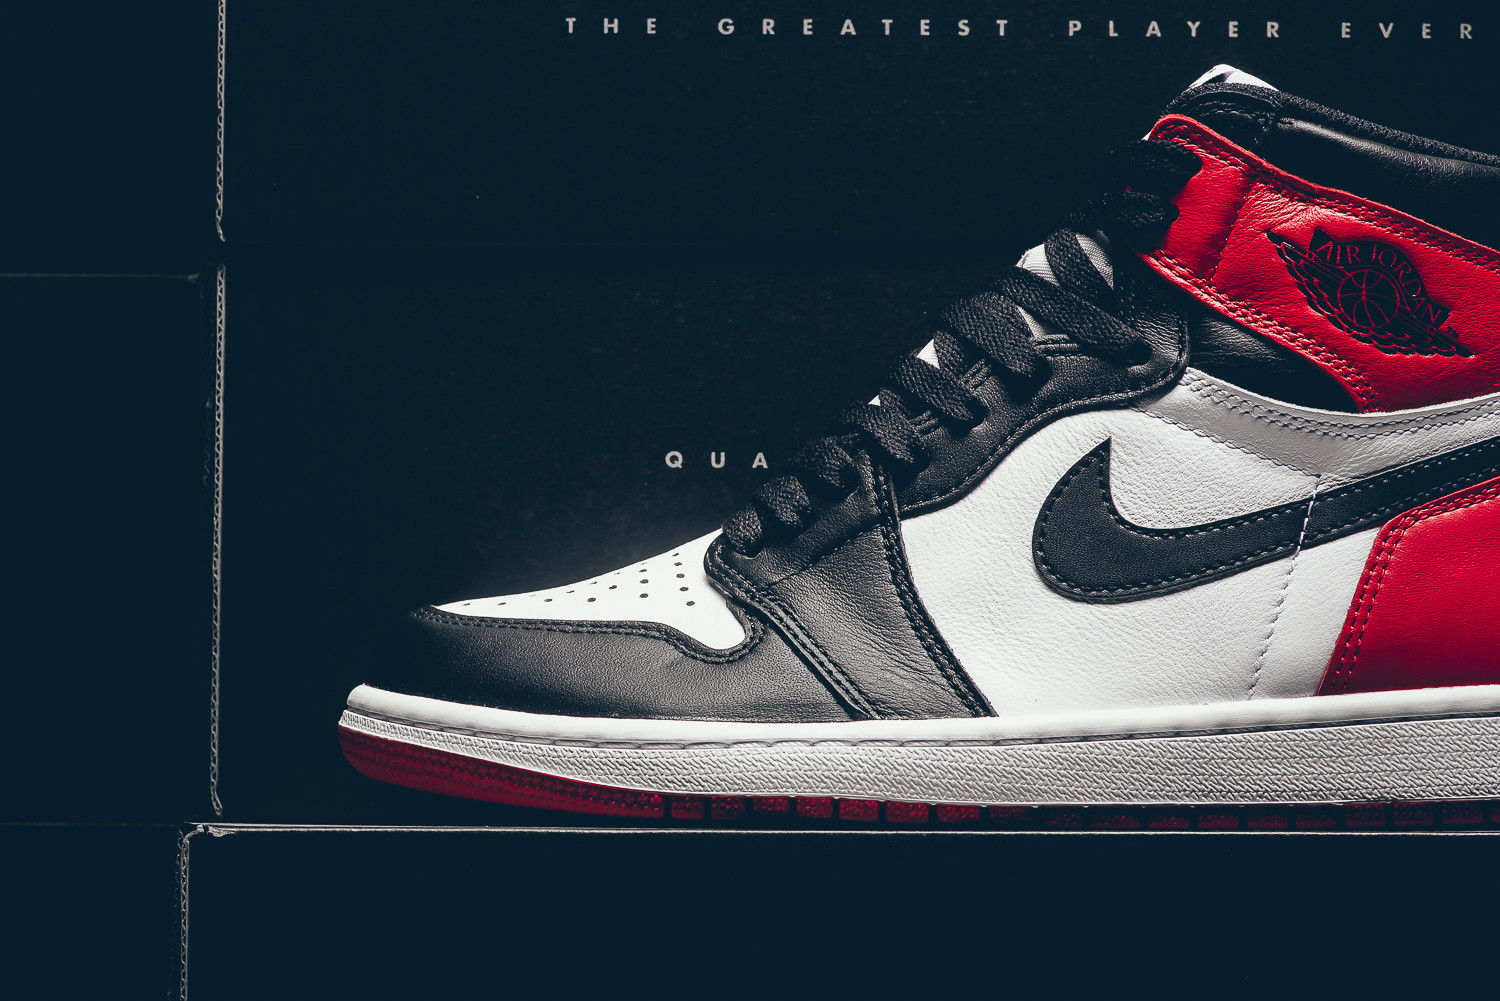 5a73dc6baac882 Air Jordan 1 (I) Retro High OG Color  White Black-Varsity Red Style   555088-125. Release Date  11 05 2016. Price   160.00. Click here for more  ...